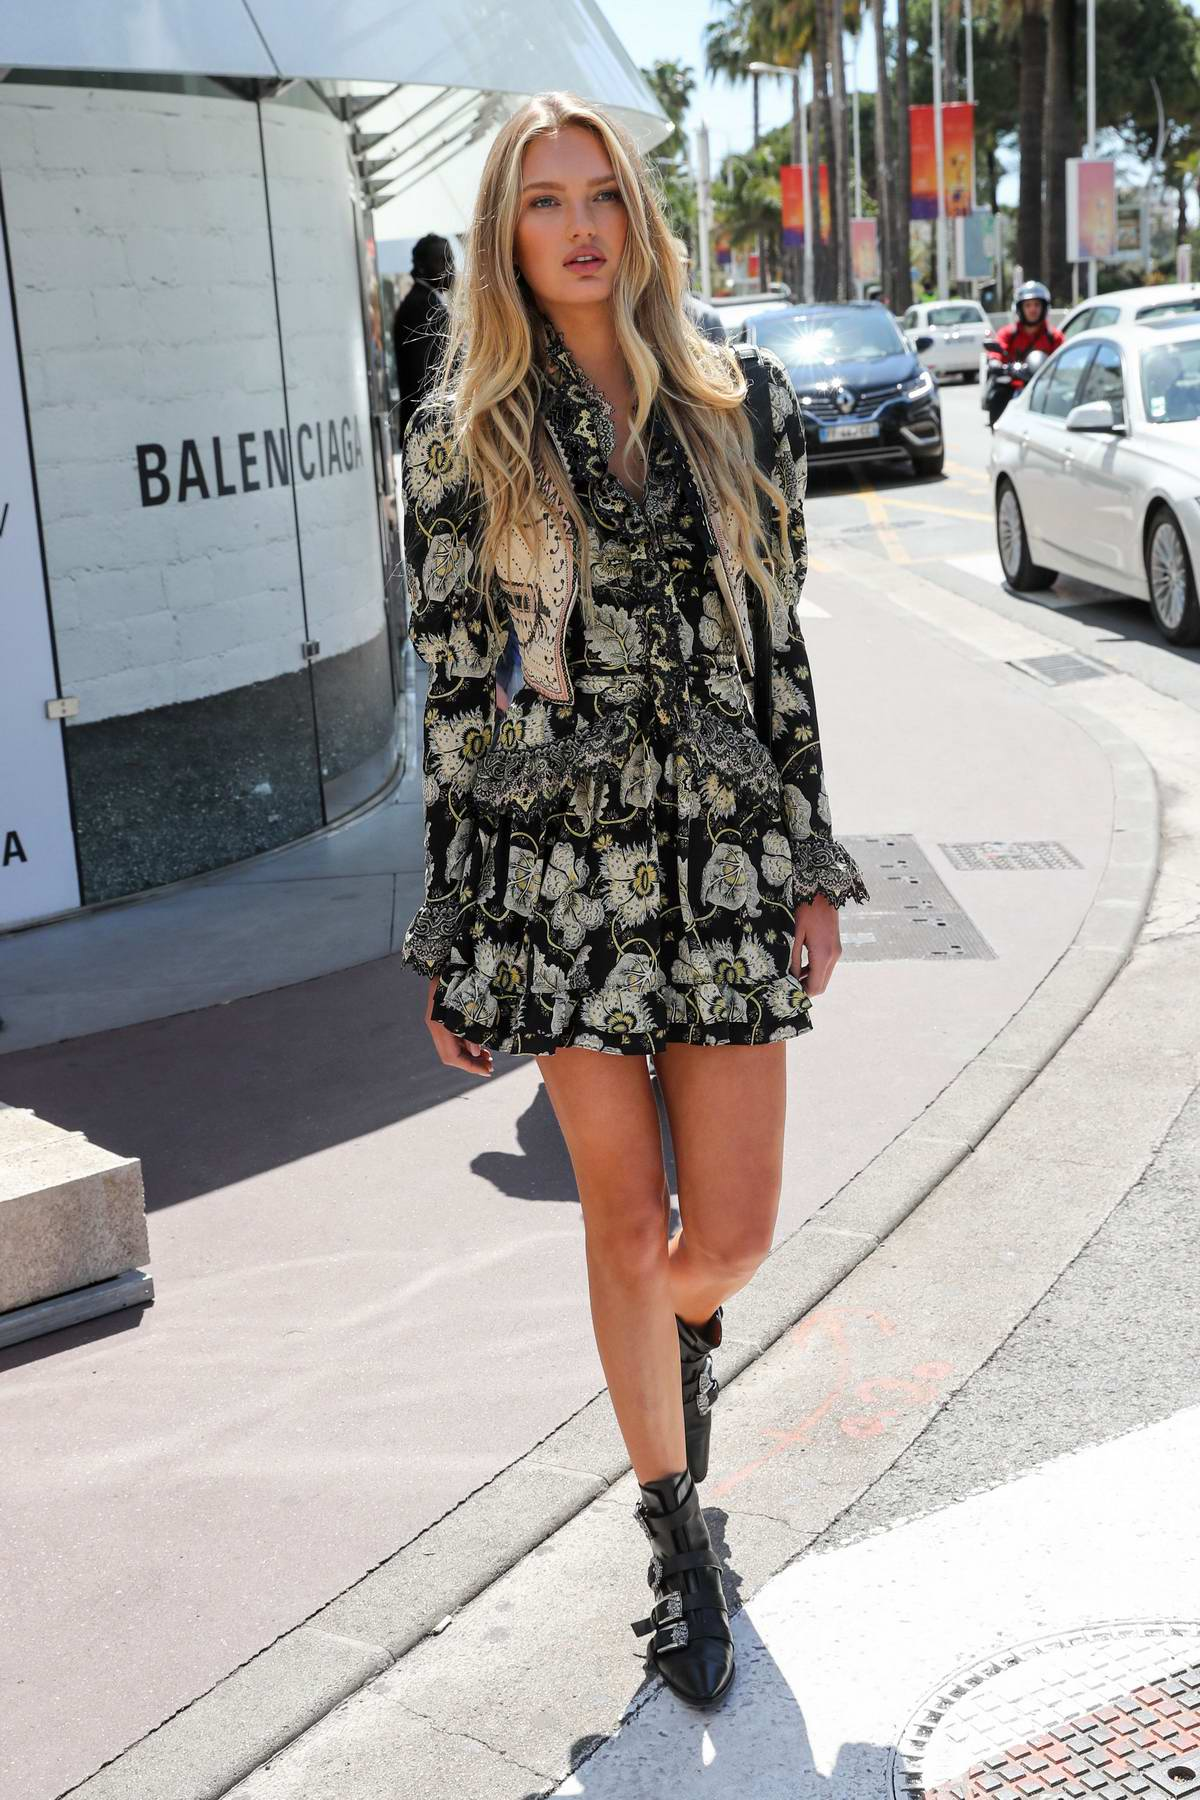 Romee Strijd steps out in a short floral print dress on the Croisette during the 72nd Cannes Film Festival in Cannes, France